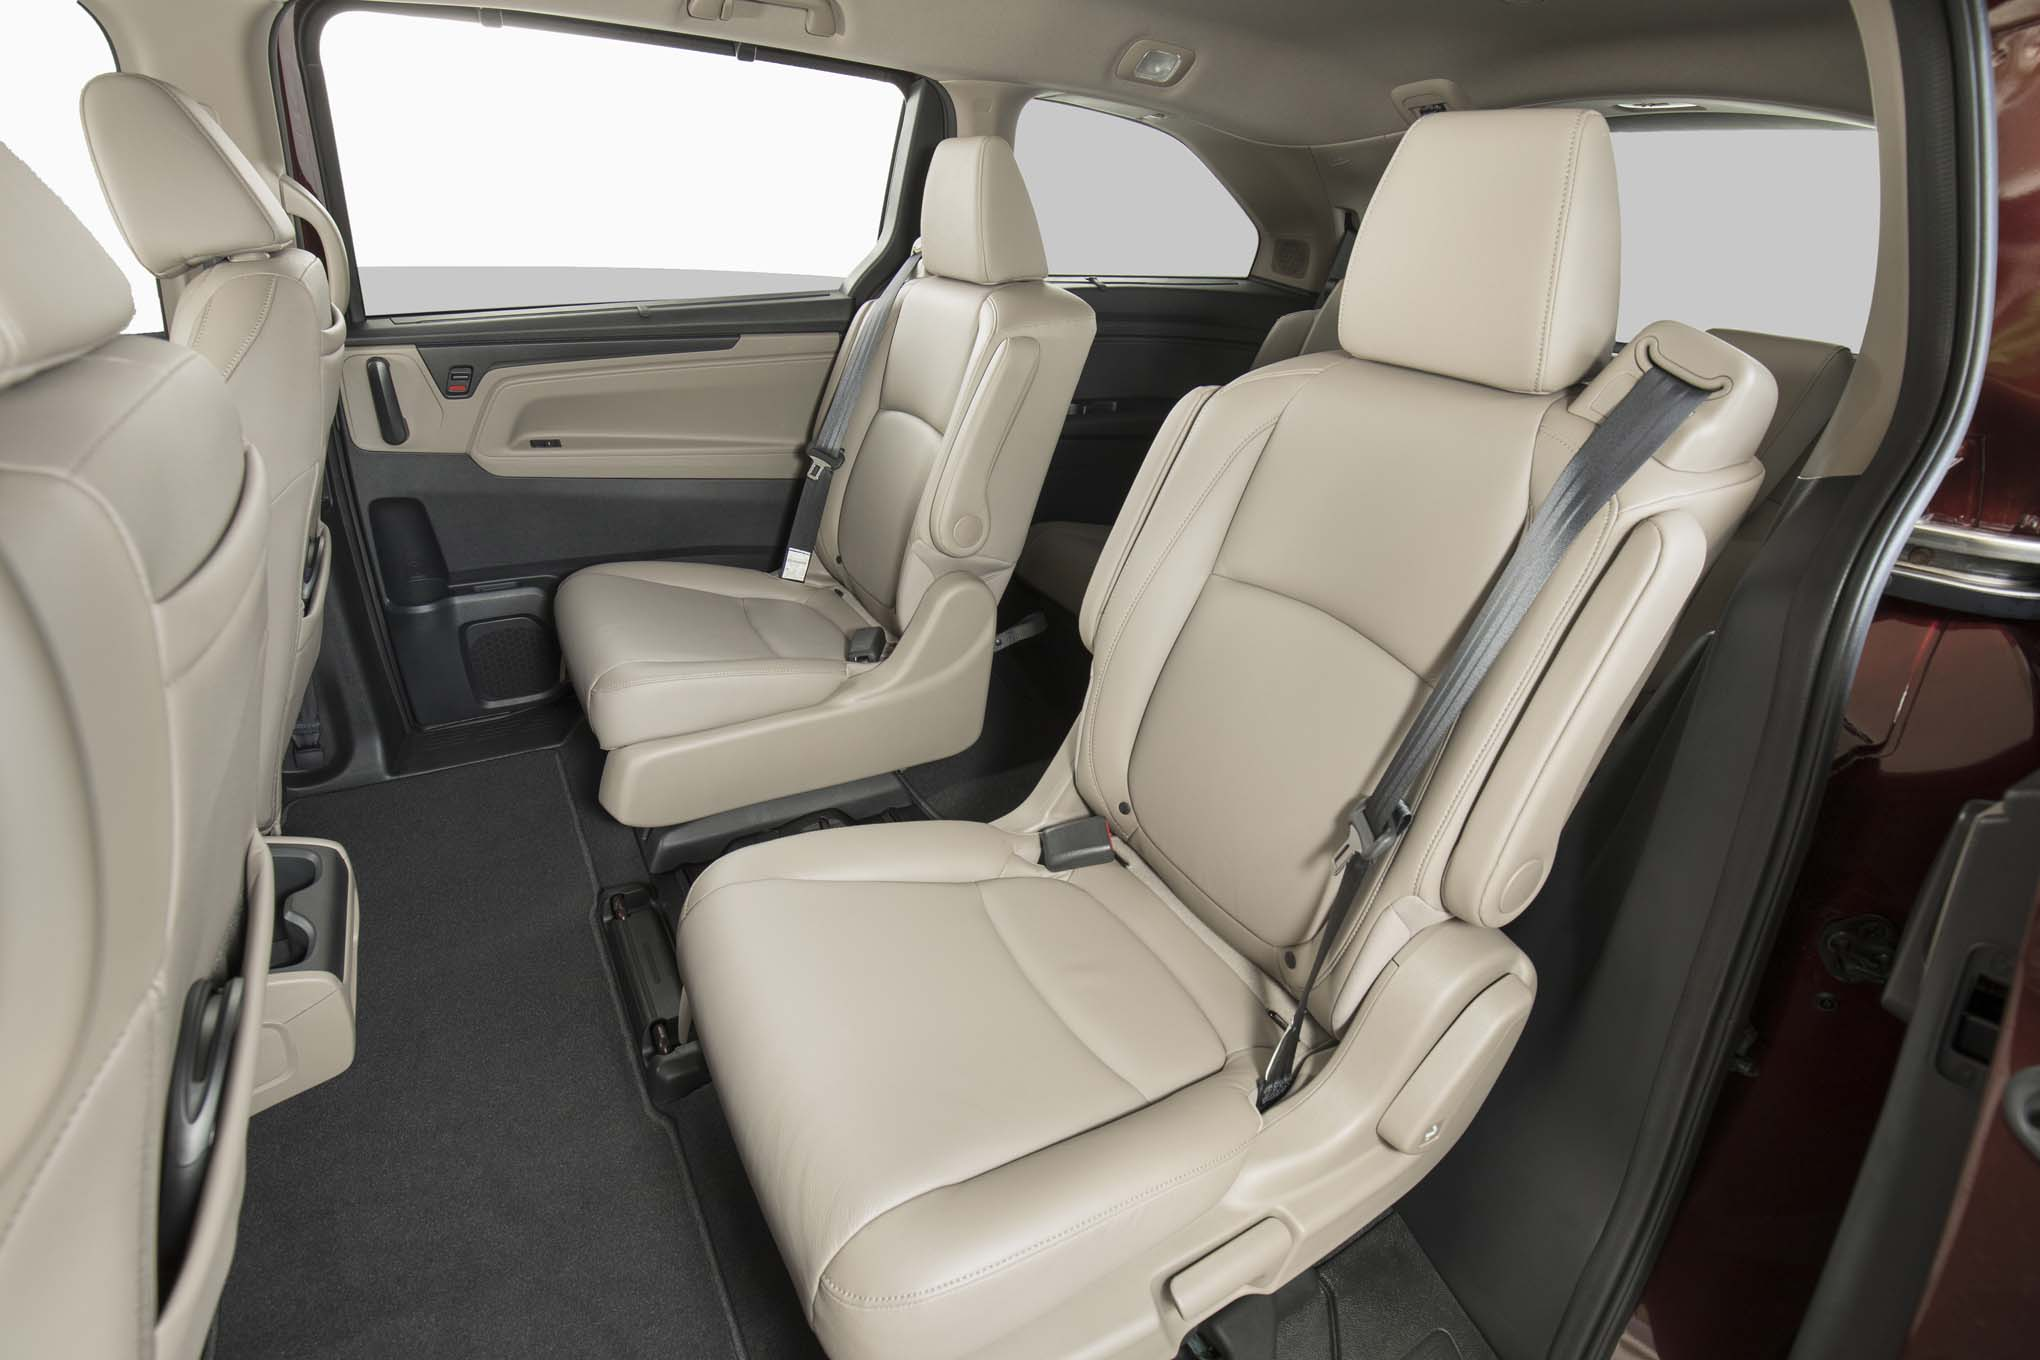 2018 honda odyssey priced from 30 890 automobile magazine. Black Bedroom Furniture Sets. Home Design Ideas